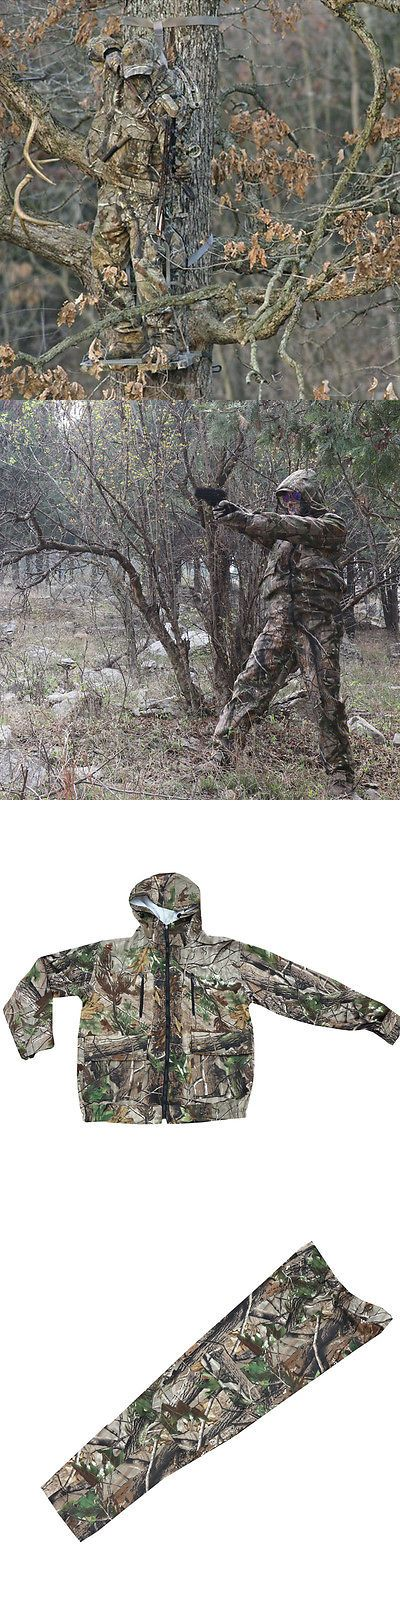 Ghillie Suits 177870: 3D Bionic Leaves Camouflage Ghillie Suit Snipper Tactical Military Camo Suit Set -> BUY IT NOW ONLY: $64 on eBay!